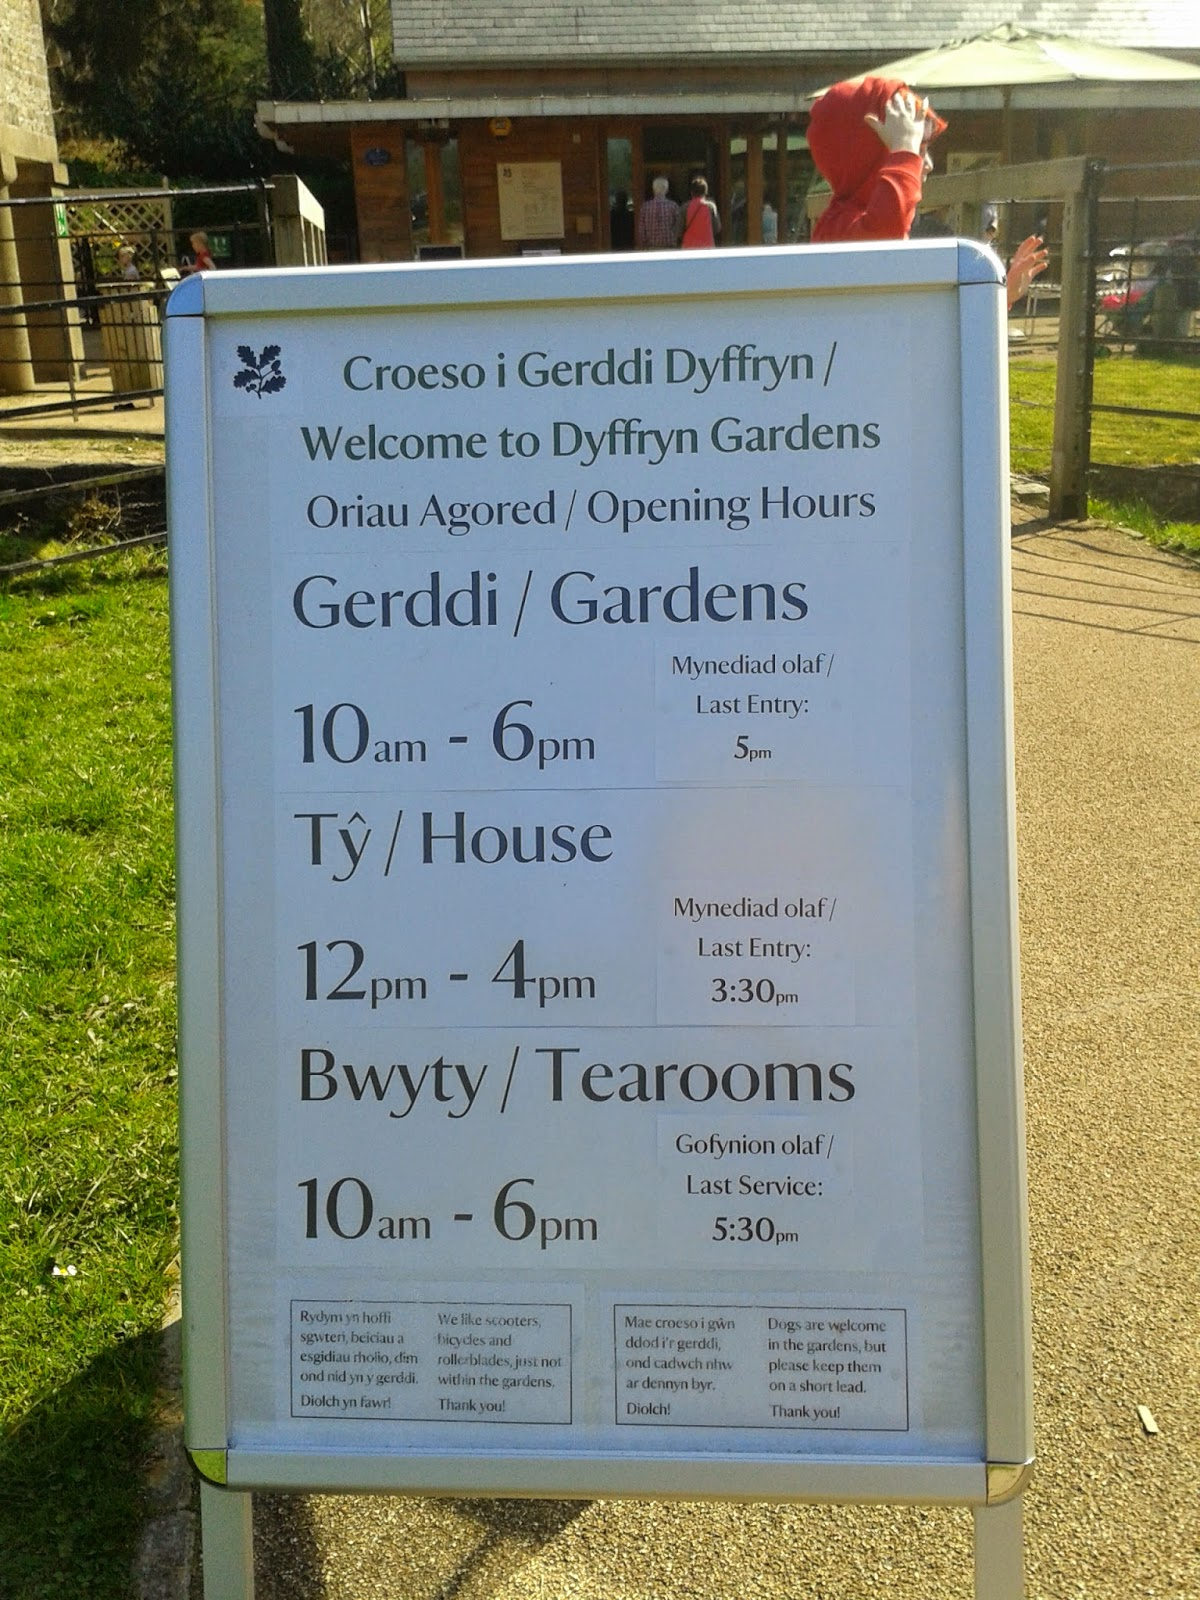 National Trust Dyffryn Gardens Welcome Board & Opening Times